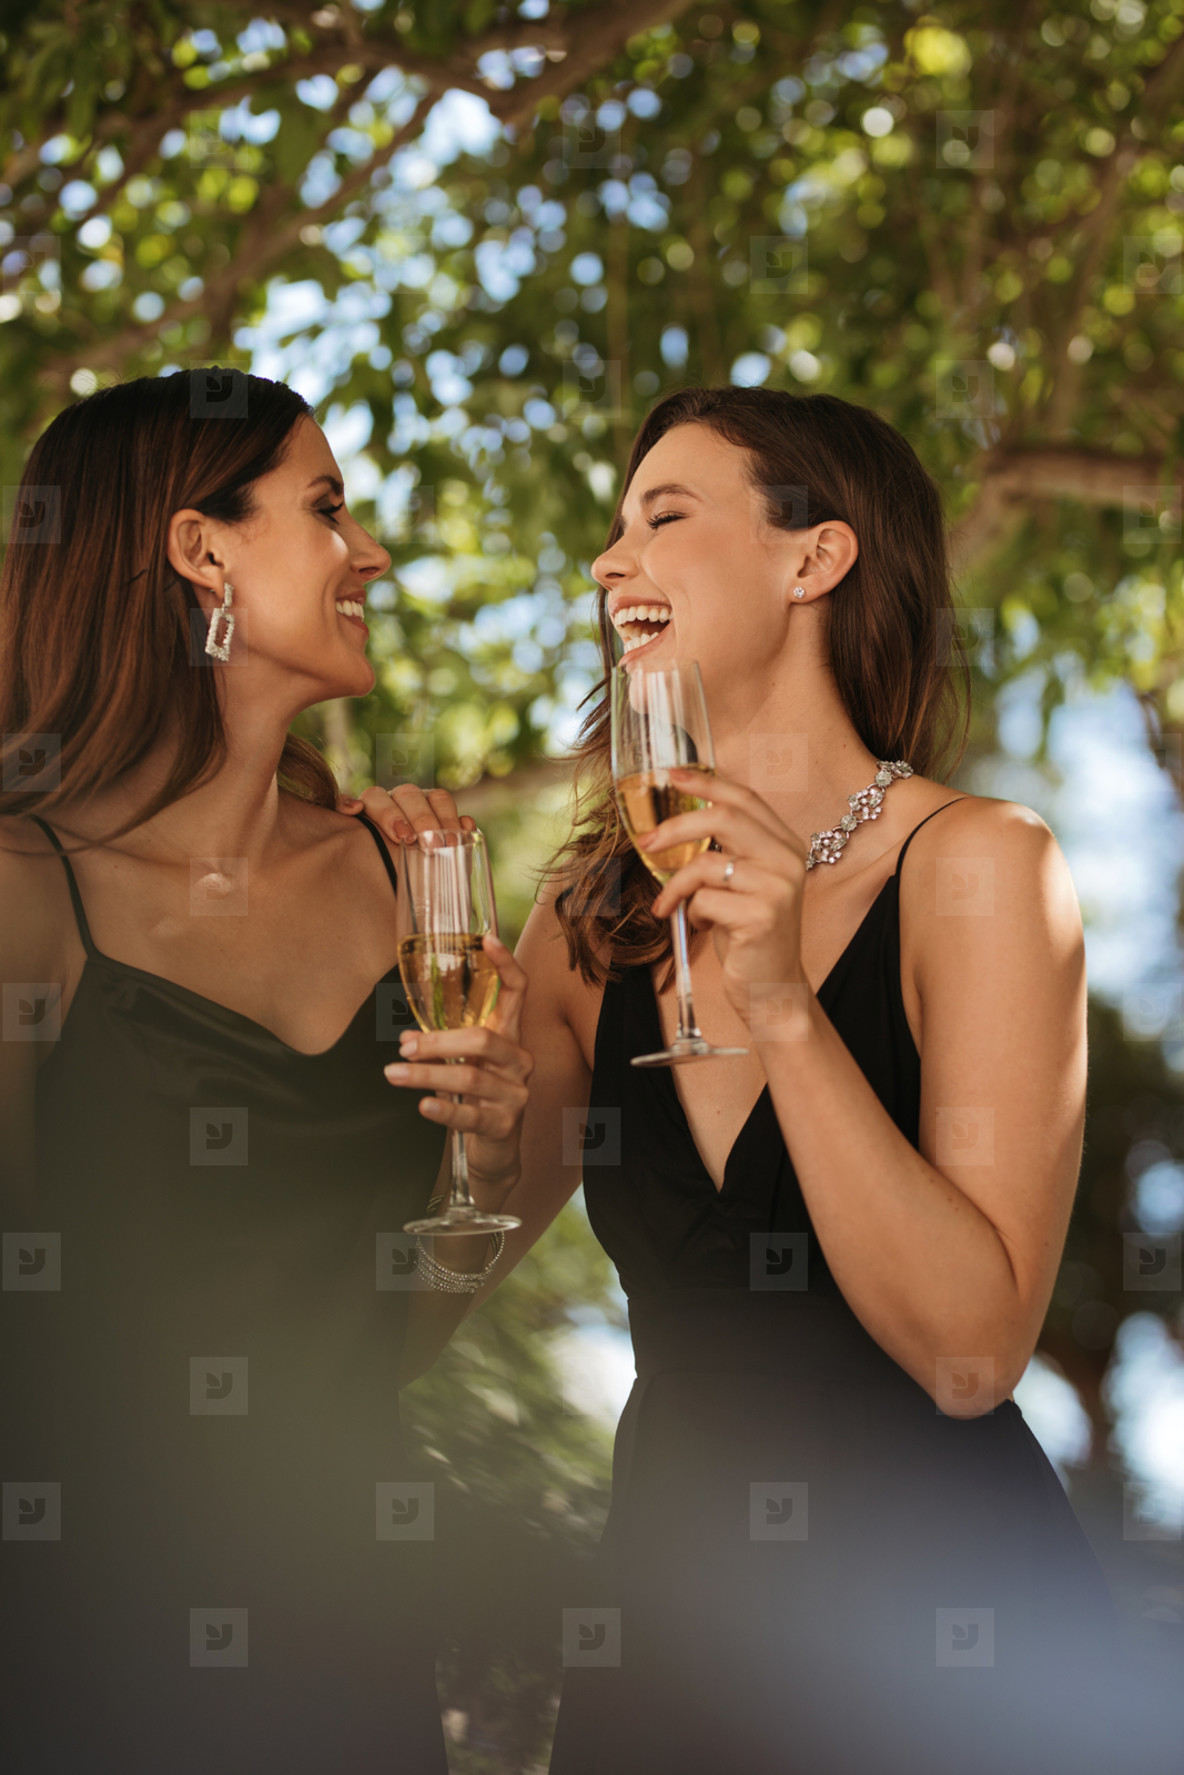 Two women enjoying at outdoor party